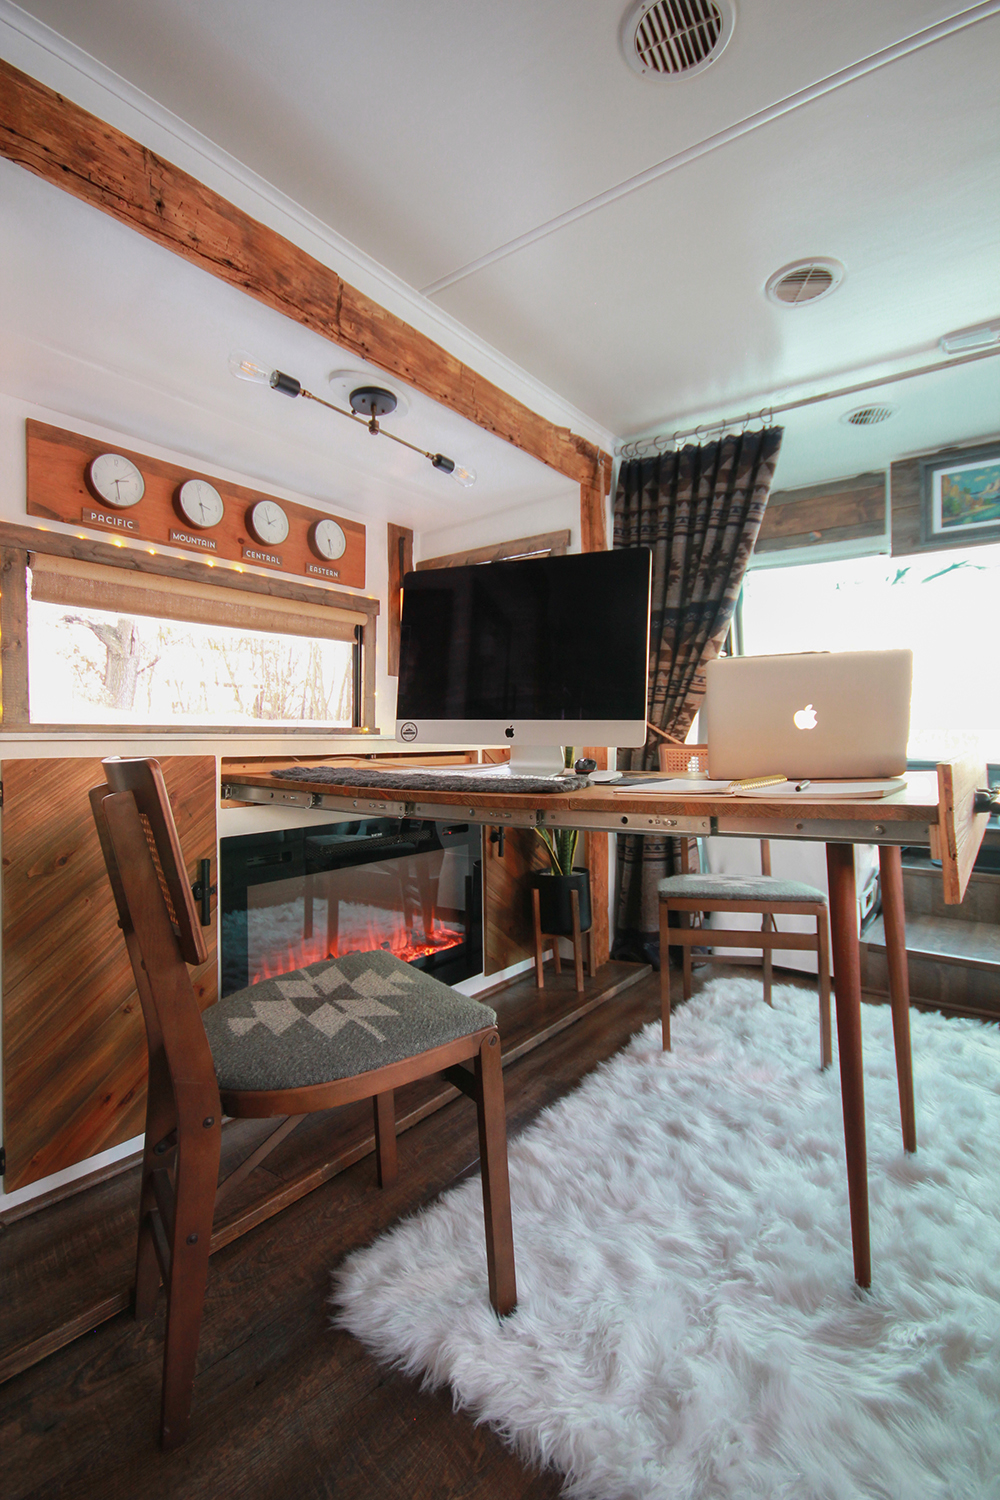 Renovated RV Interior from MountainModernLife.com